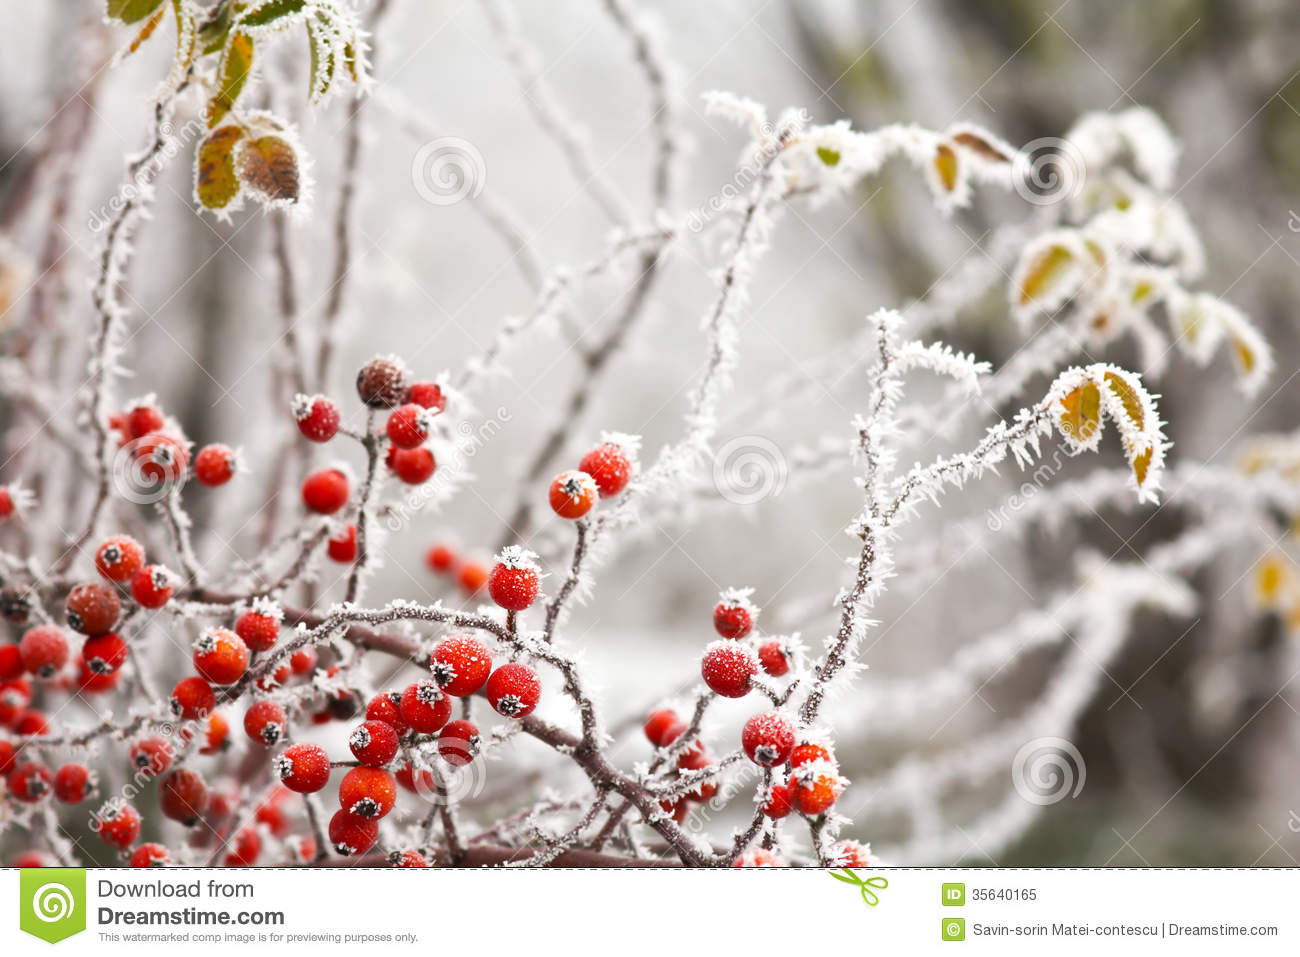 Briars Fruit And Freezing Fog Royalty Free Stock Photo.